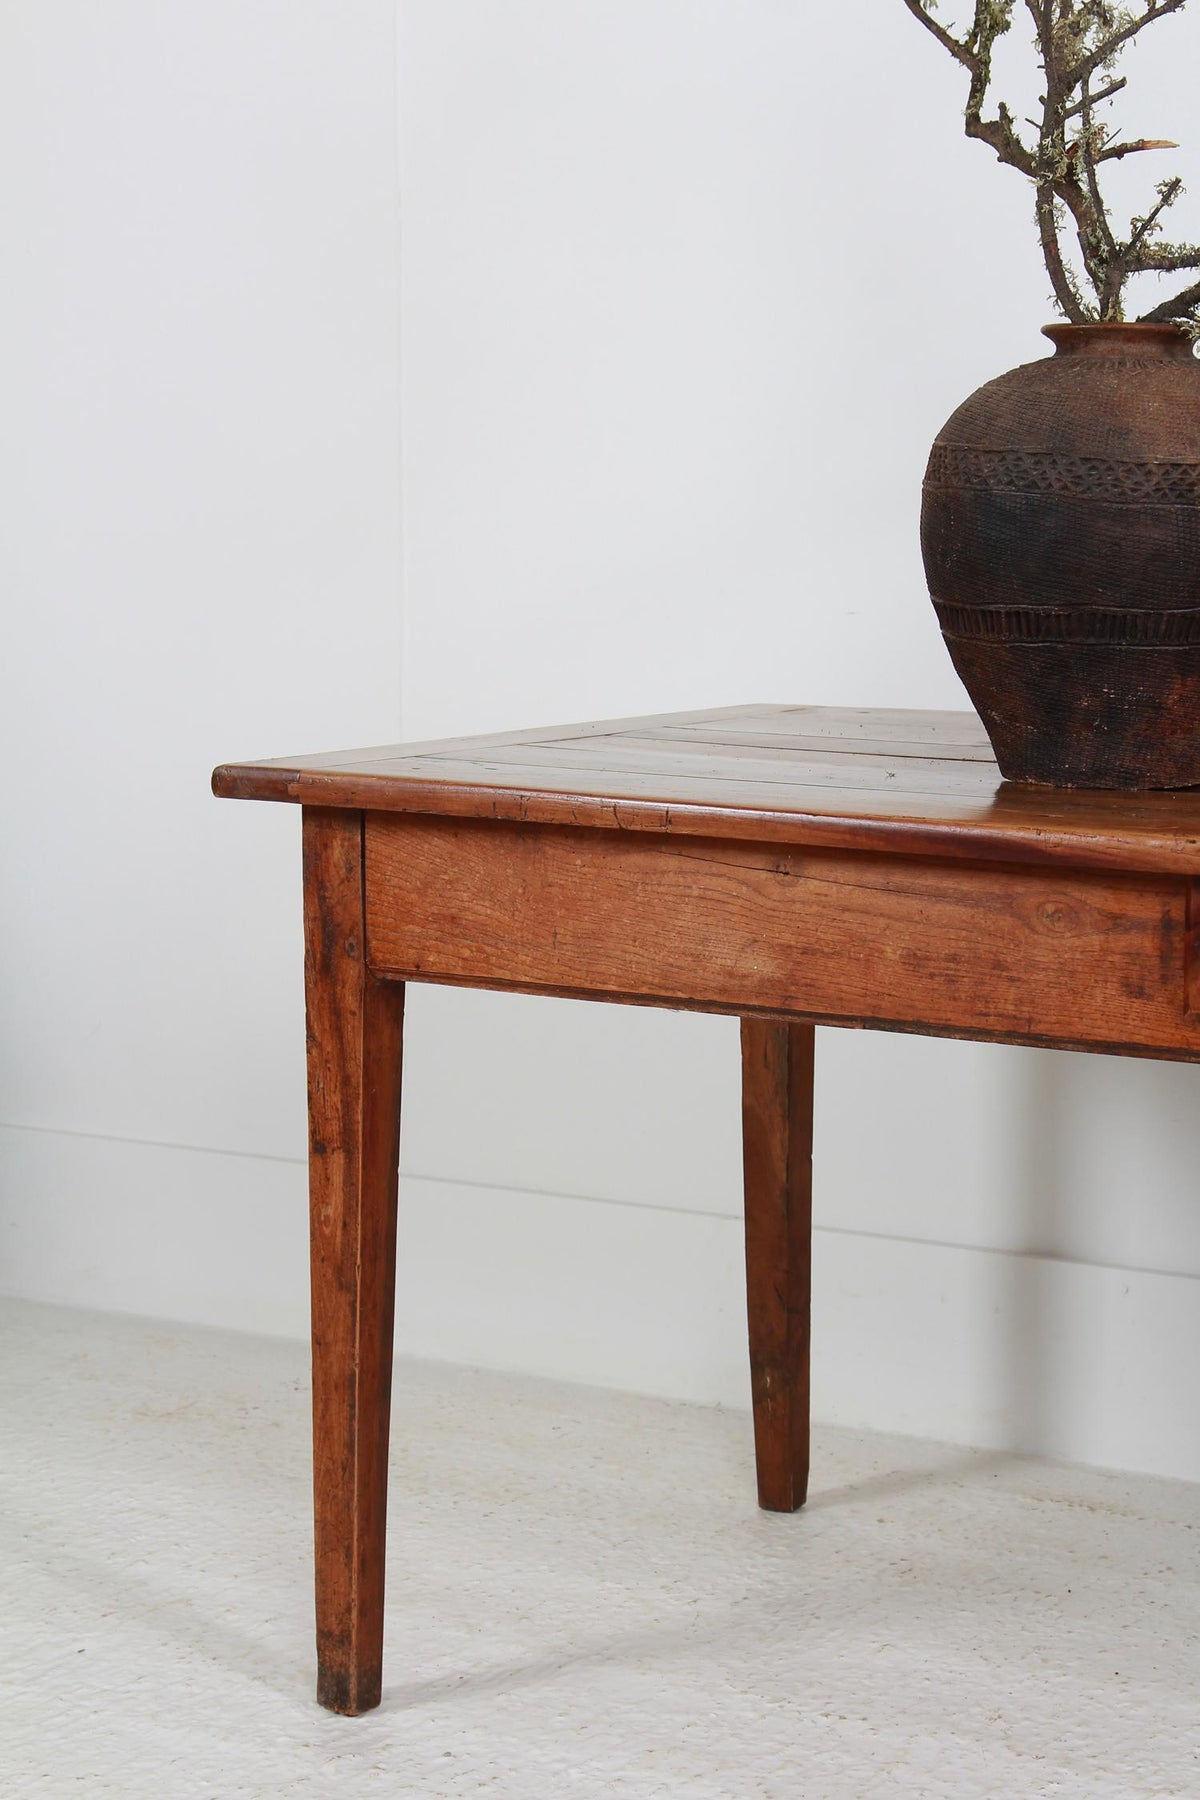 Antique French 19thC Fruitwood Farmhouse Table